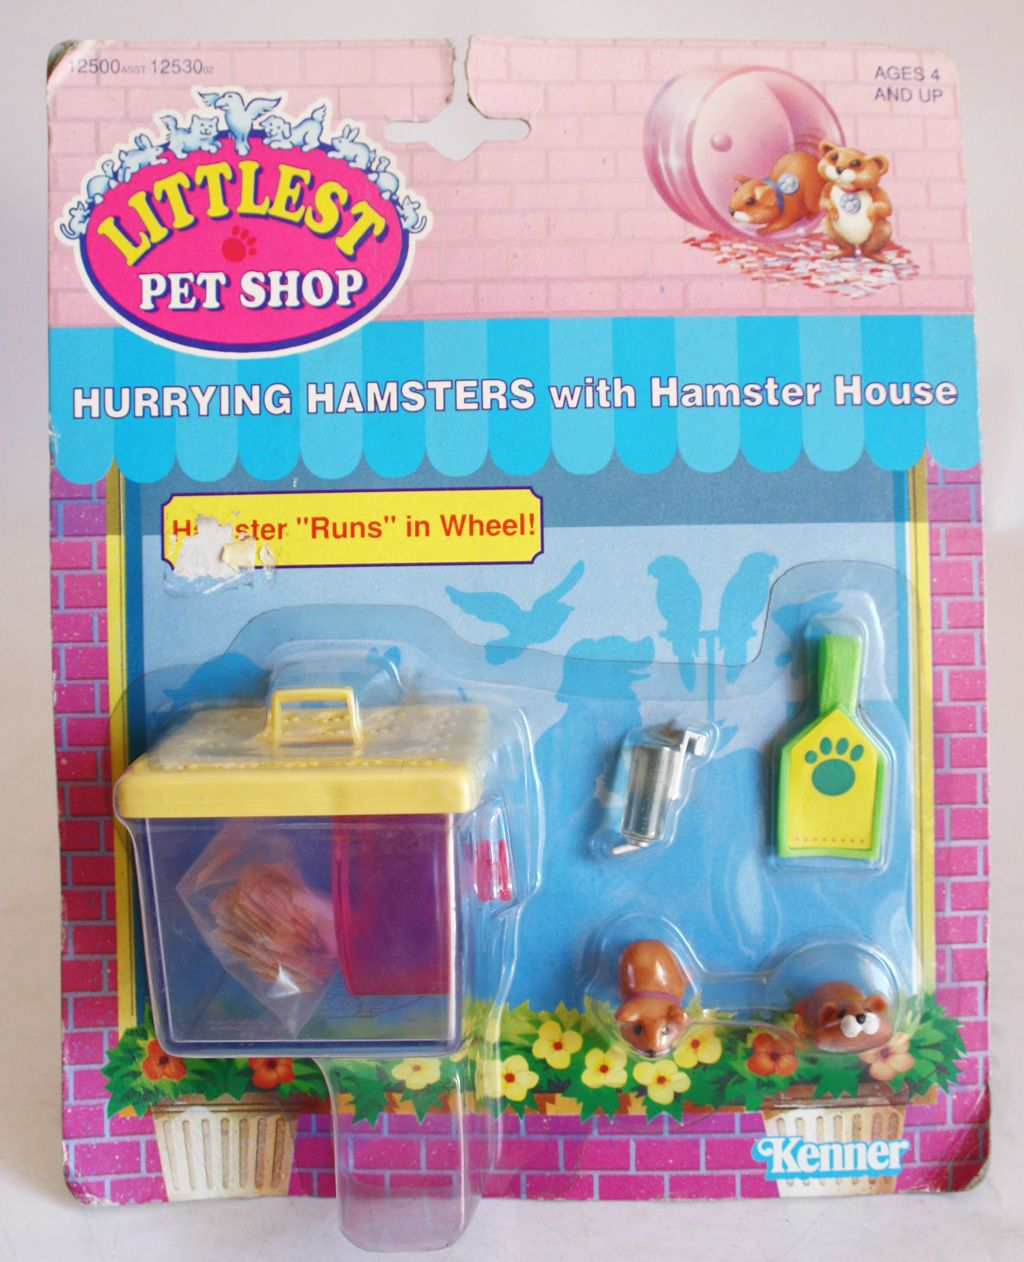 Littlest Pet Shop Hurrying Hamsters Toy Blast From The